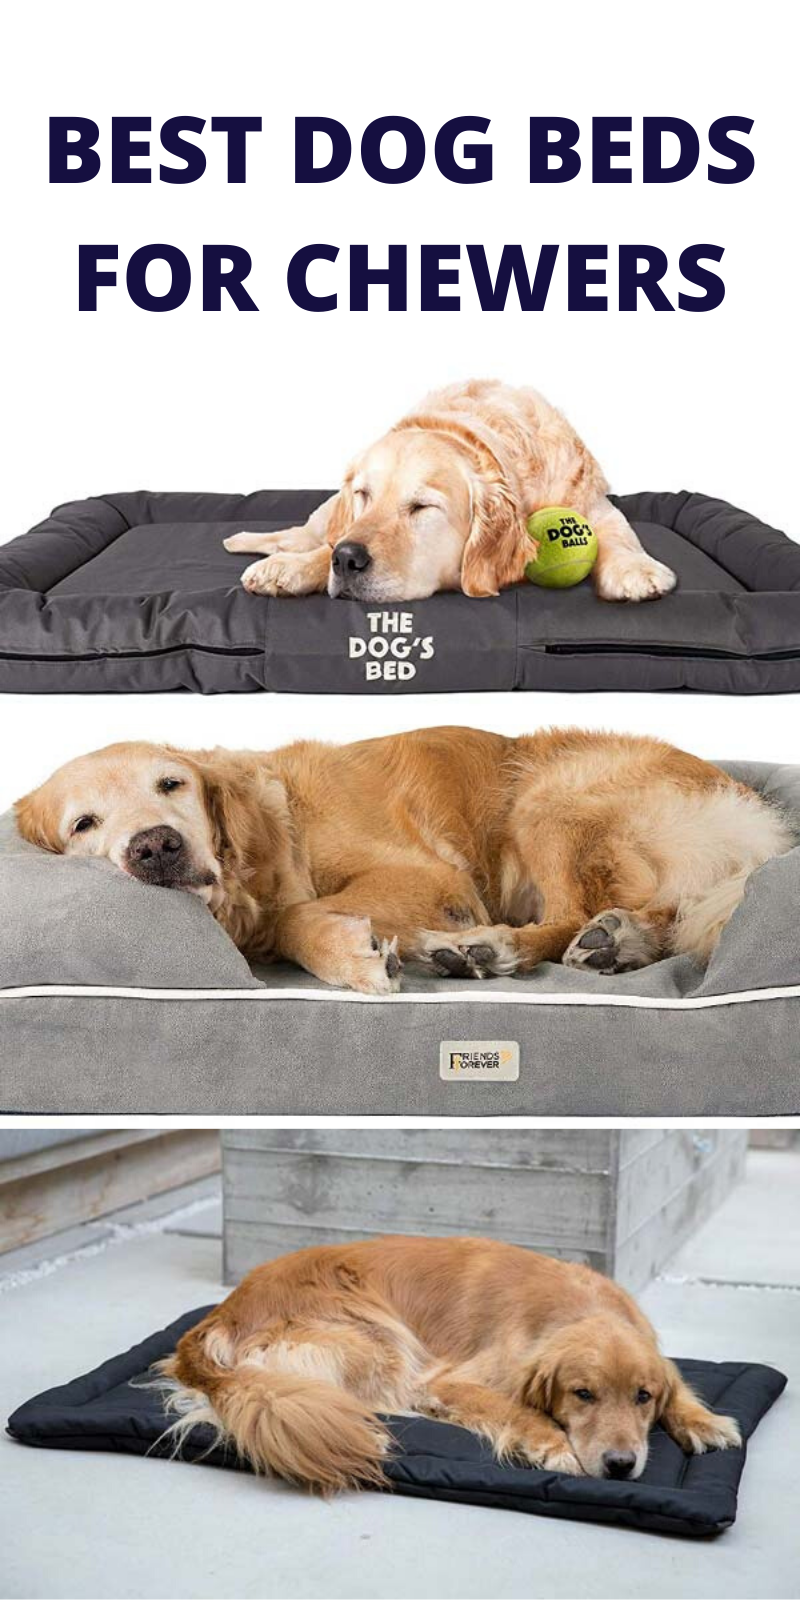 Best Beds For Dogs That Love to Chew | Dog bed, Cool dog ...